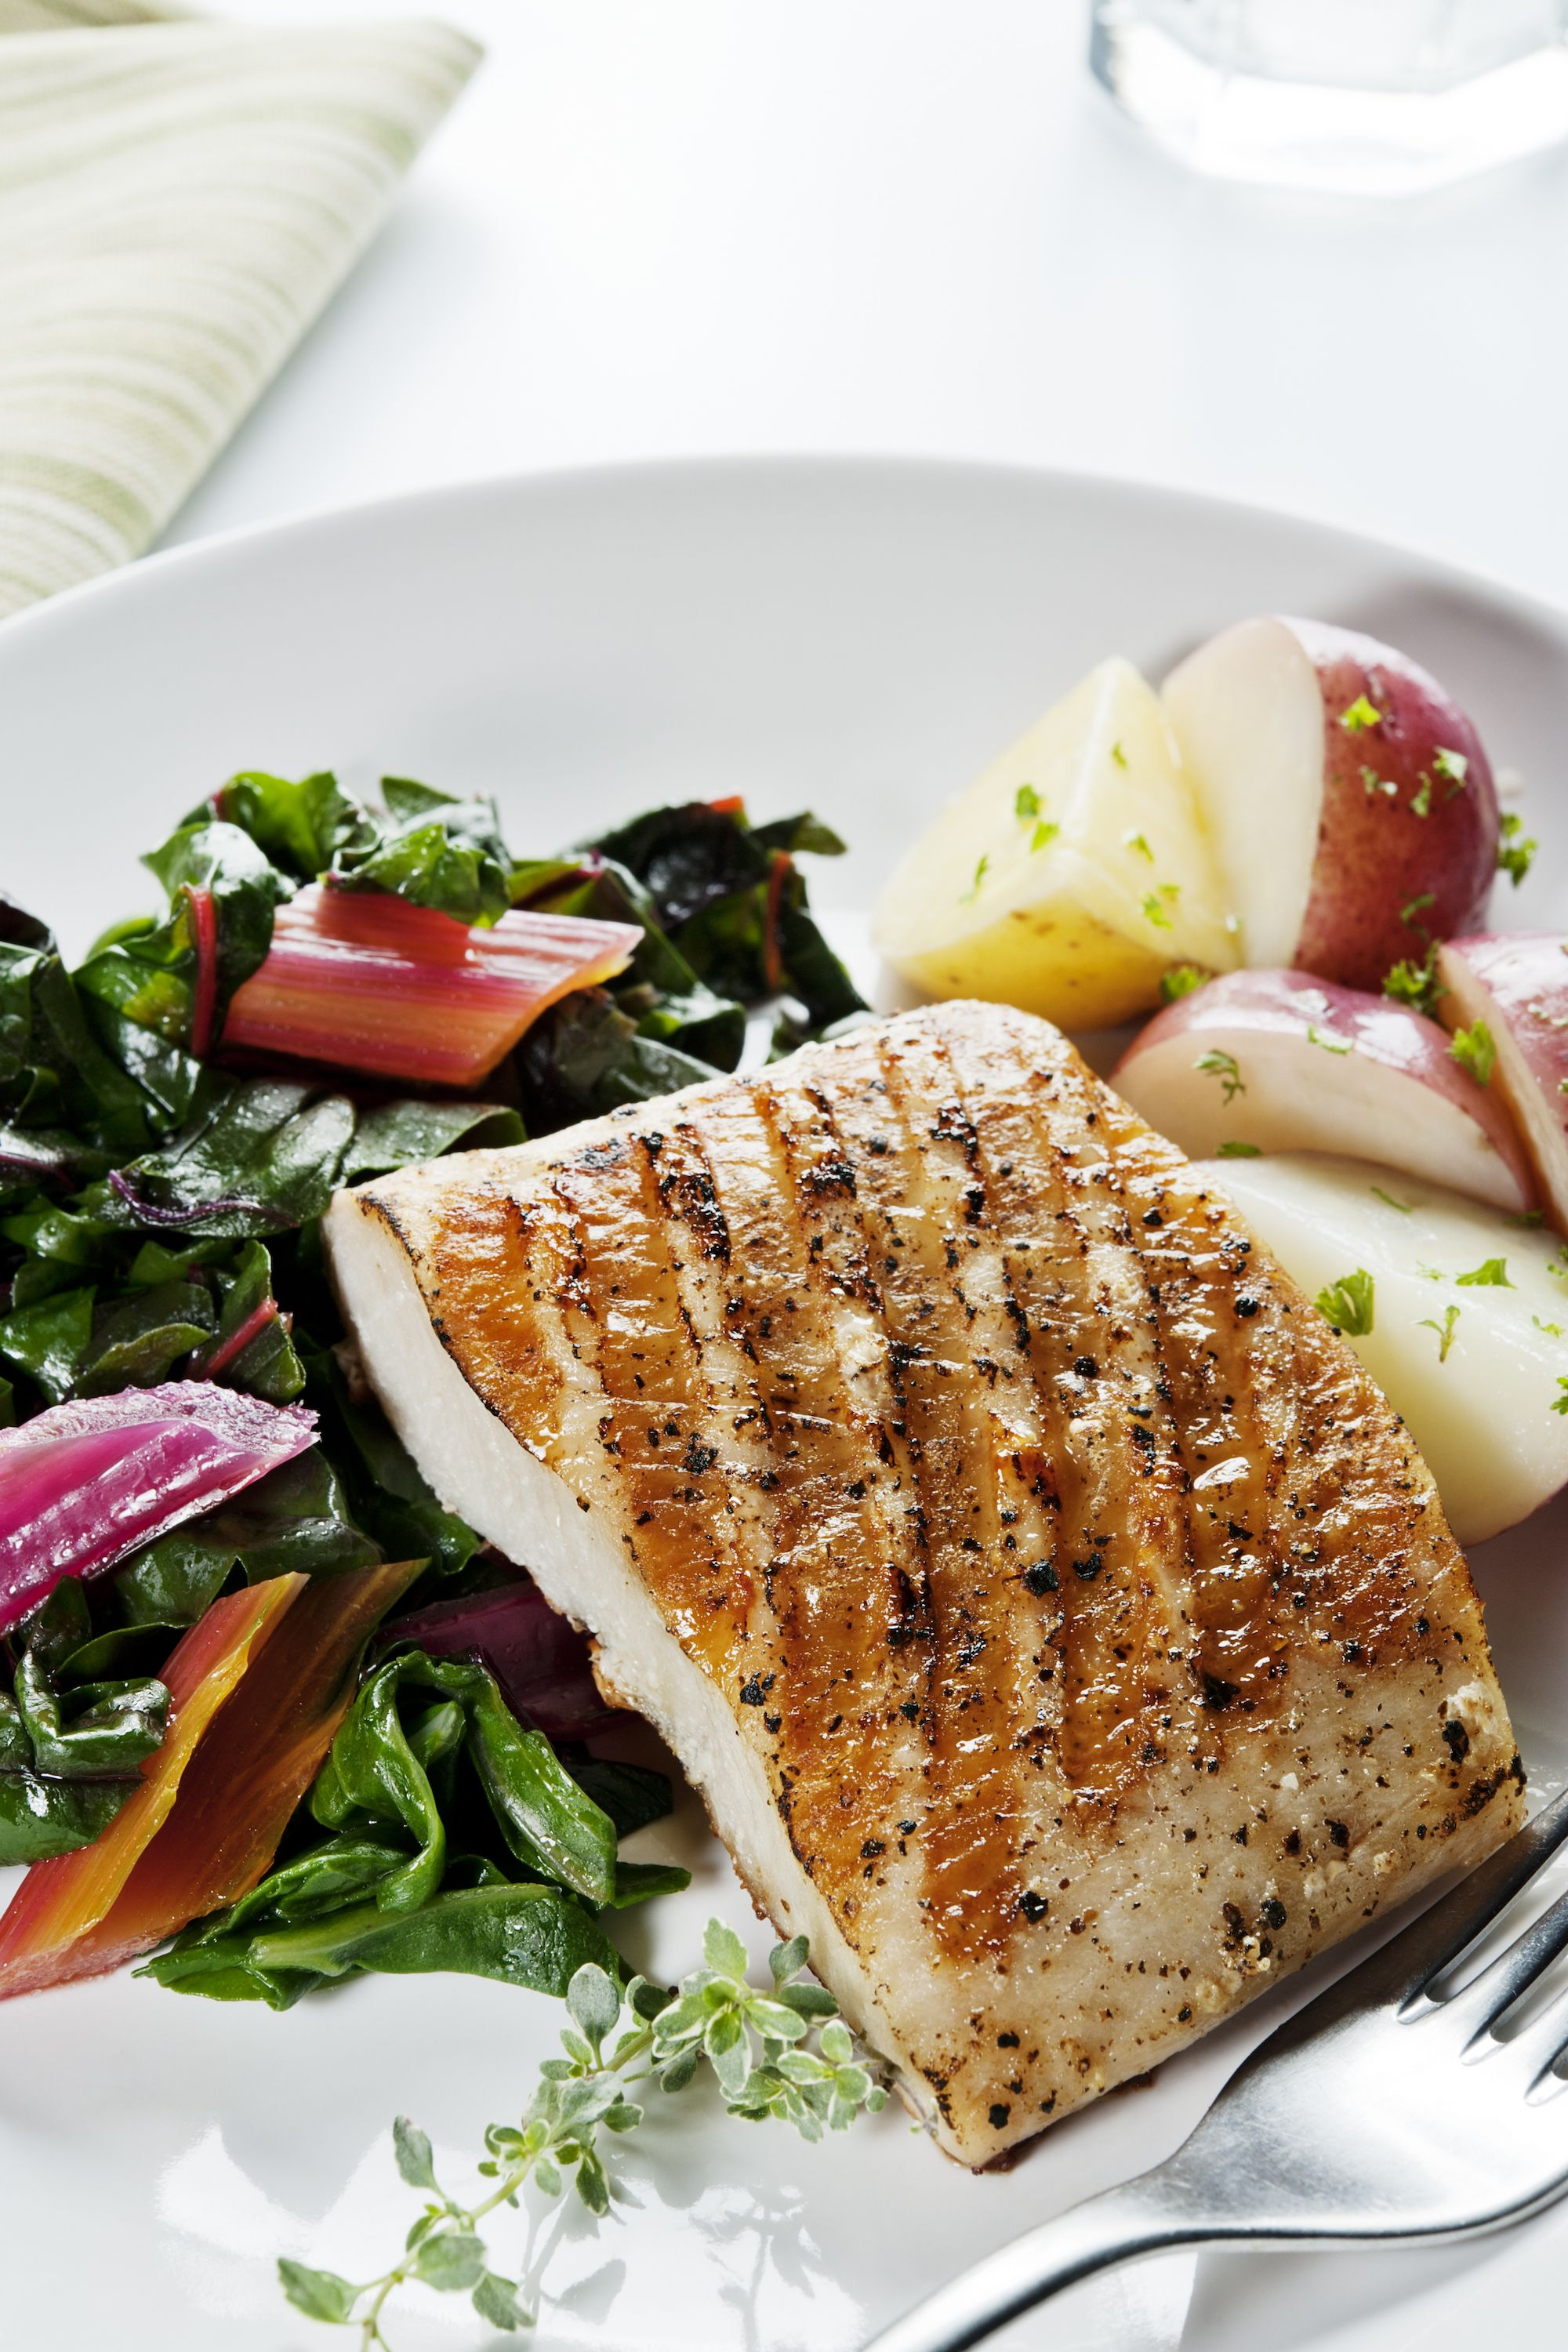 Mediterranean Diet Meal Plan - Food Recipes and Menu for a